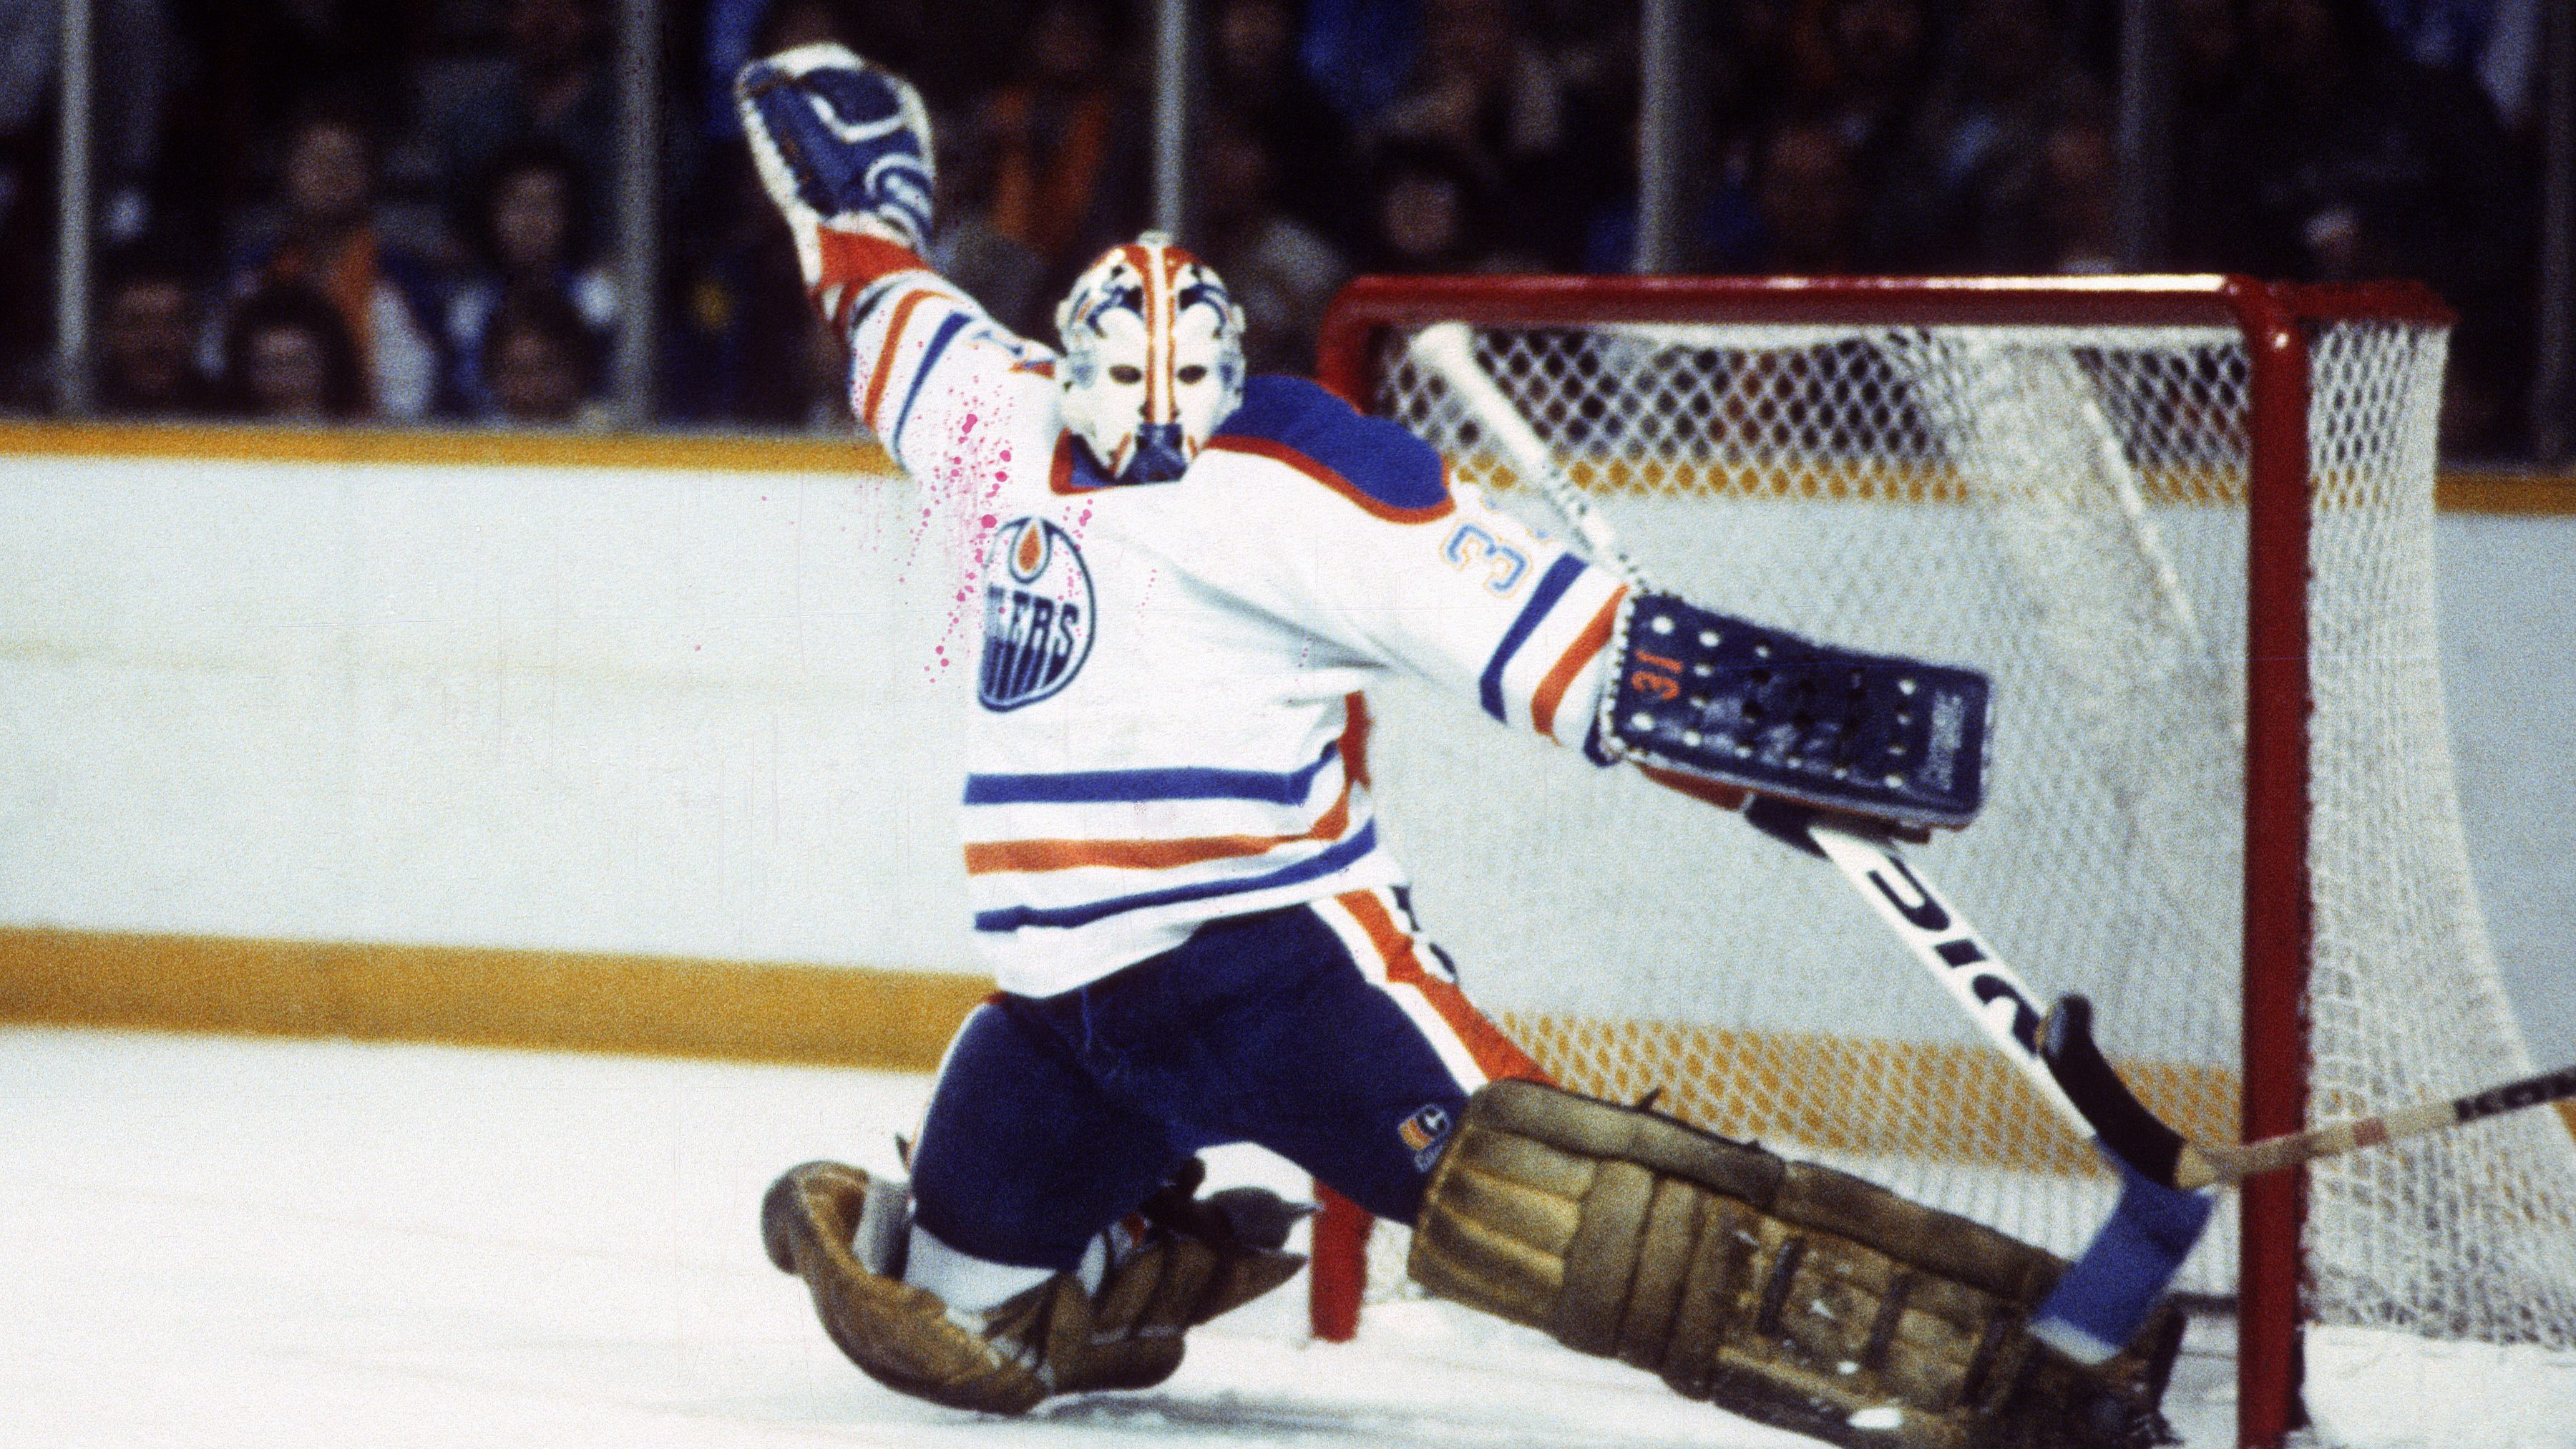 Hockey Culture: Grant Fuhr on how he became part of Oilers dynasty